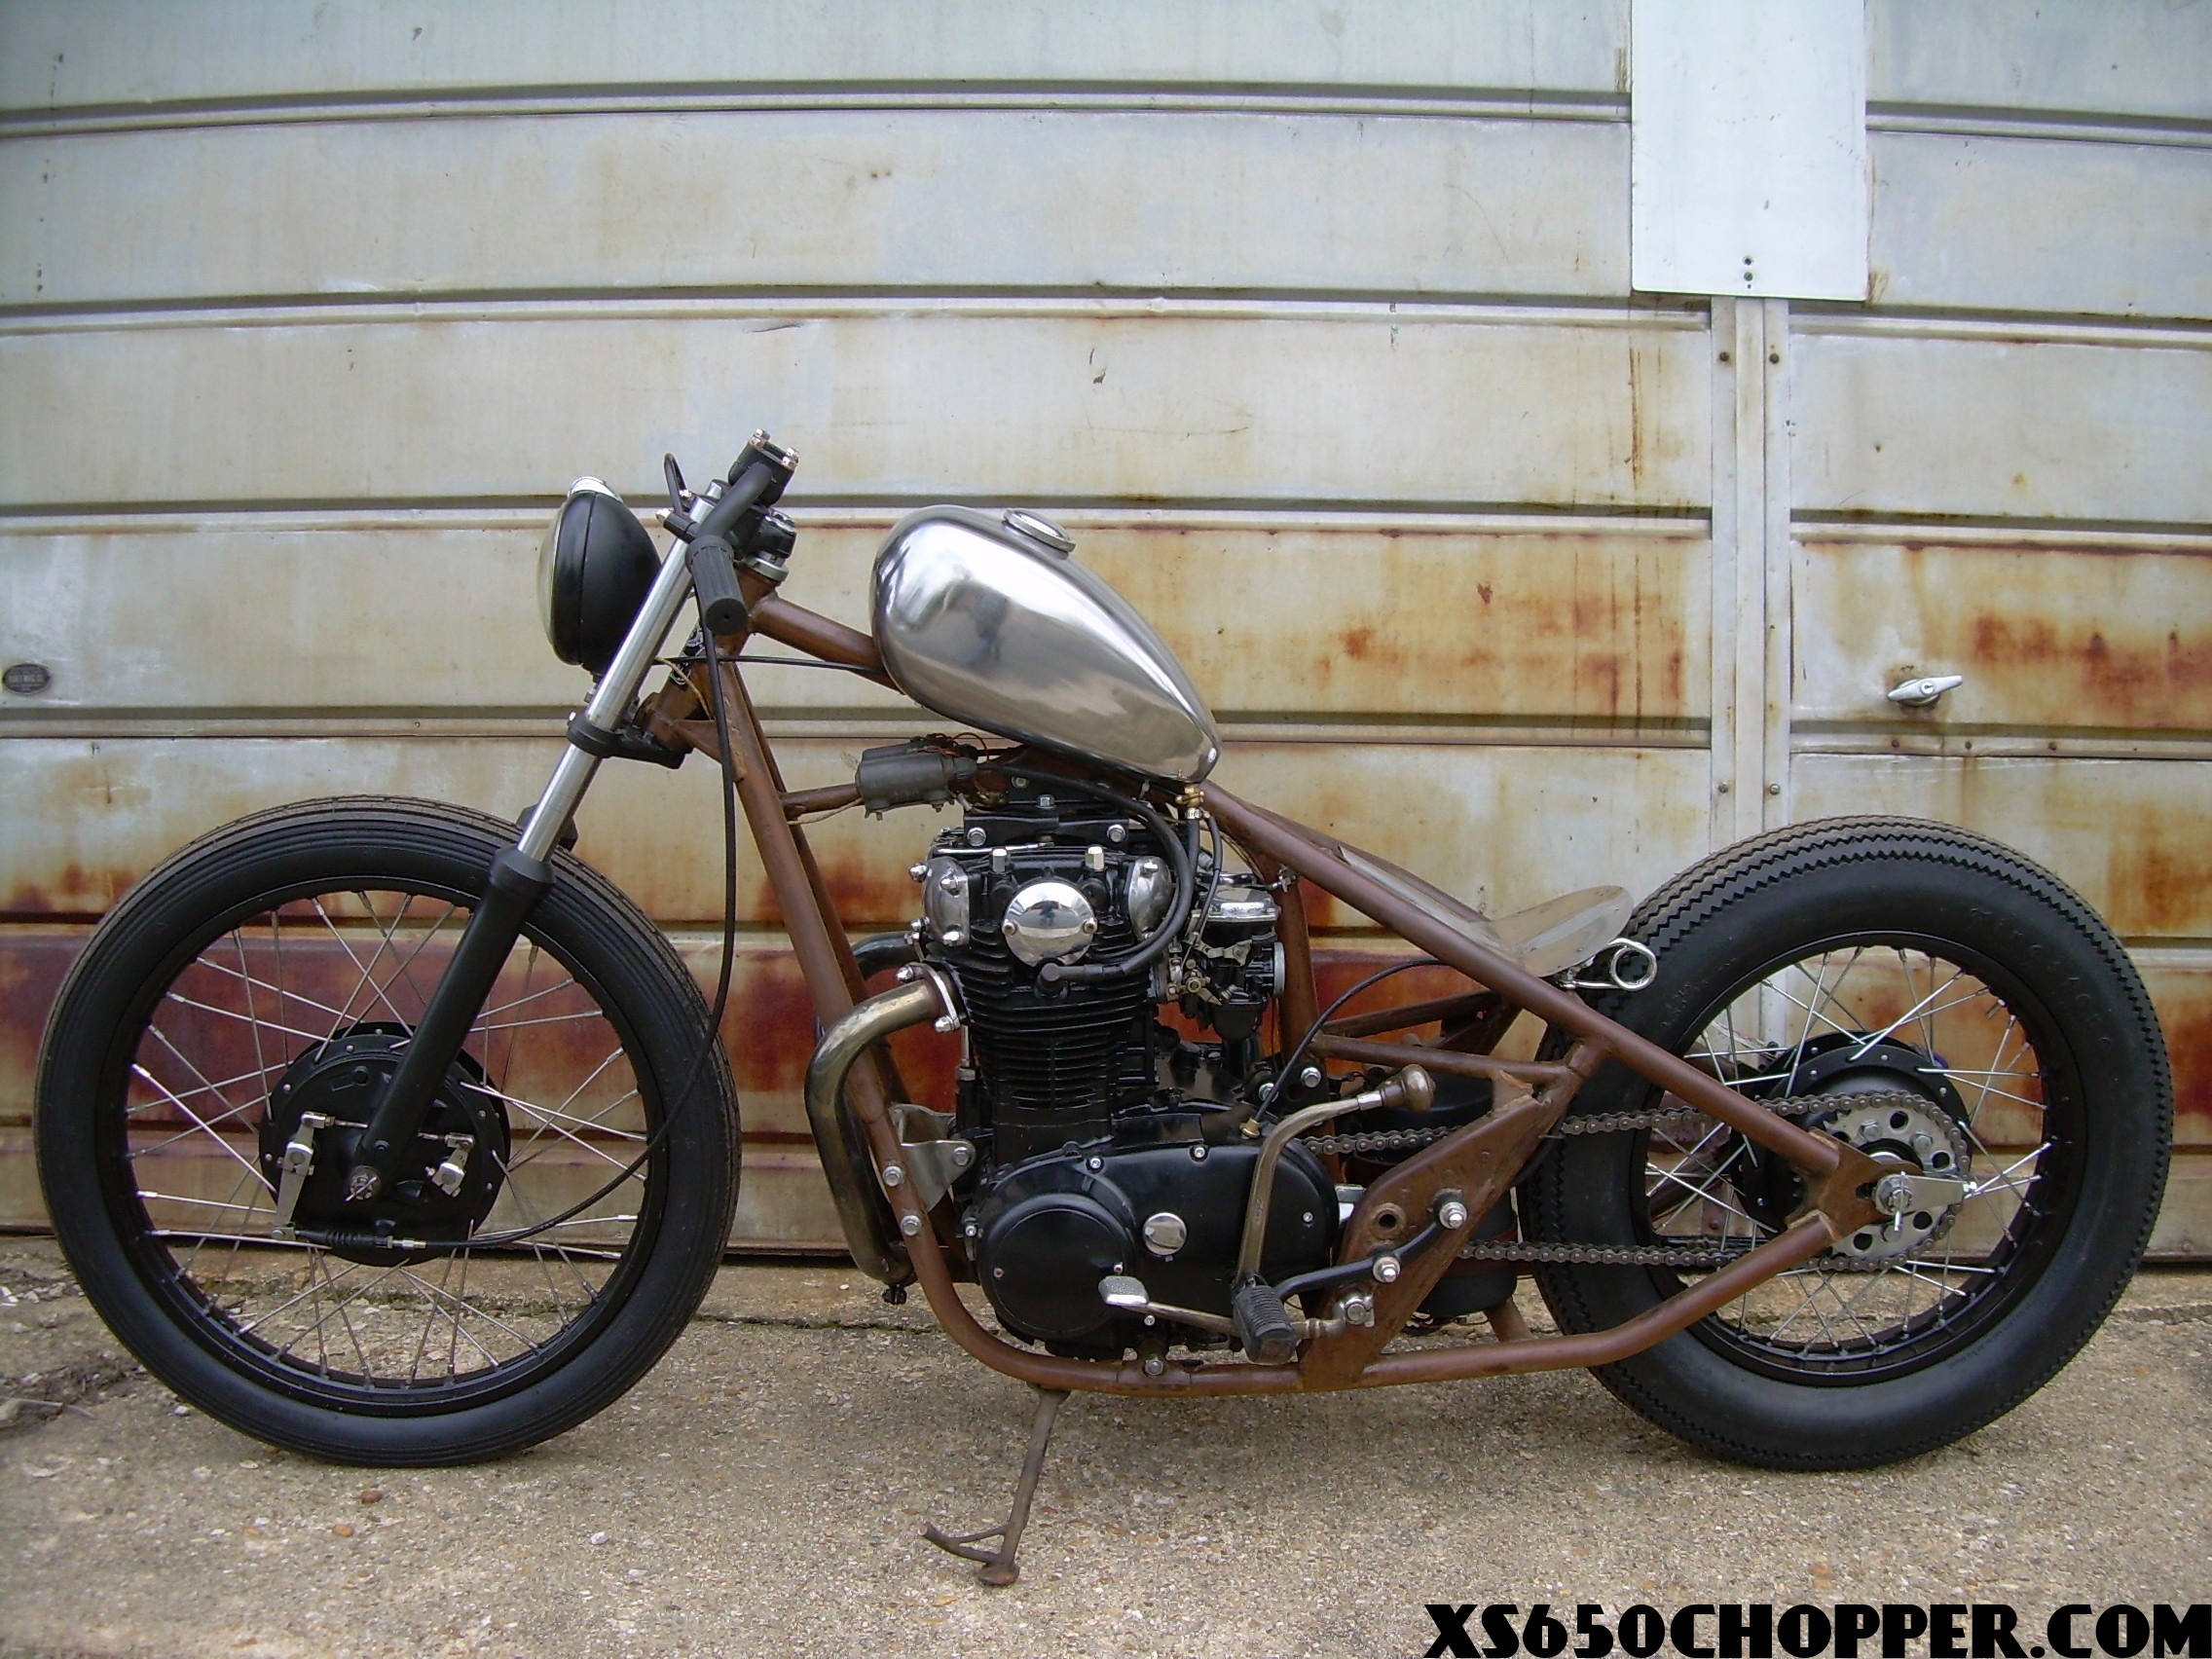 Yamaha XS650 bobber: THE FONG BROS!